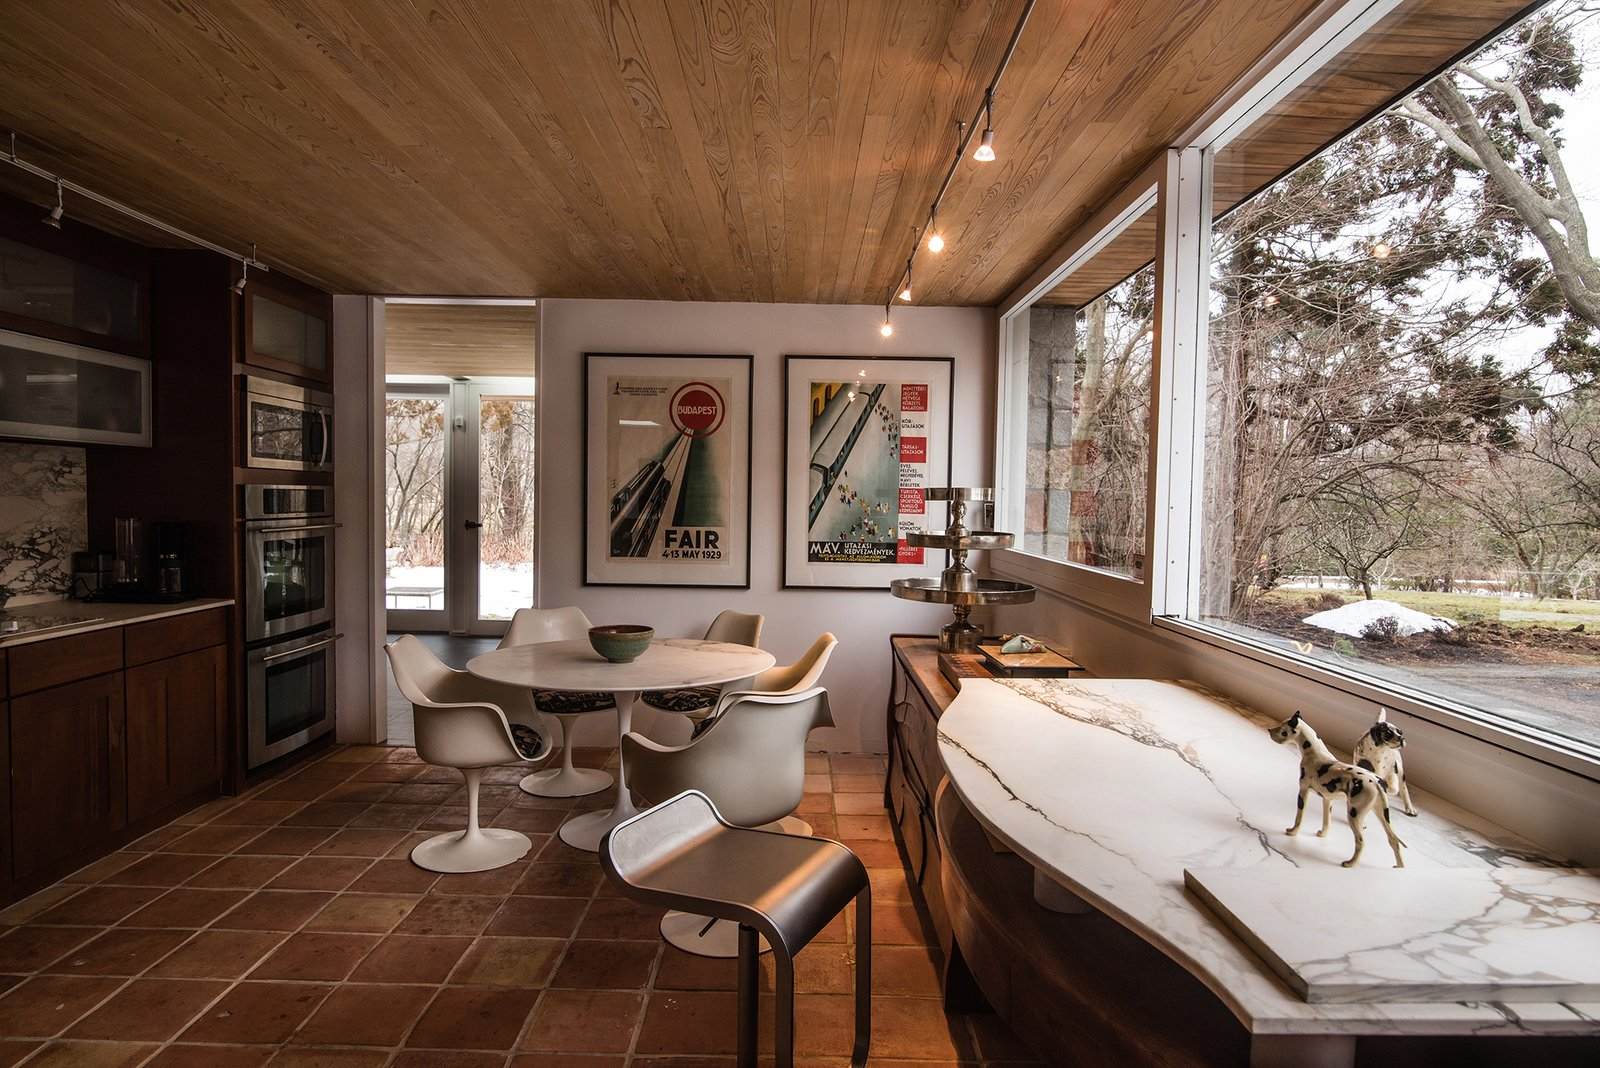 Kitchen, Wood Cabinet, Wall Oven, Ceramic Tile Floor, Track Lighting, and Microwave The kitchen has been updated.  Photo 8 of 13 in Snag This Midcentury Gem by Marcel Breuer That's Listed For $999K